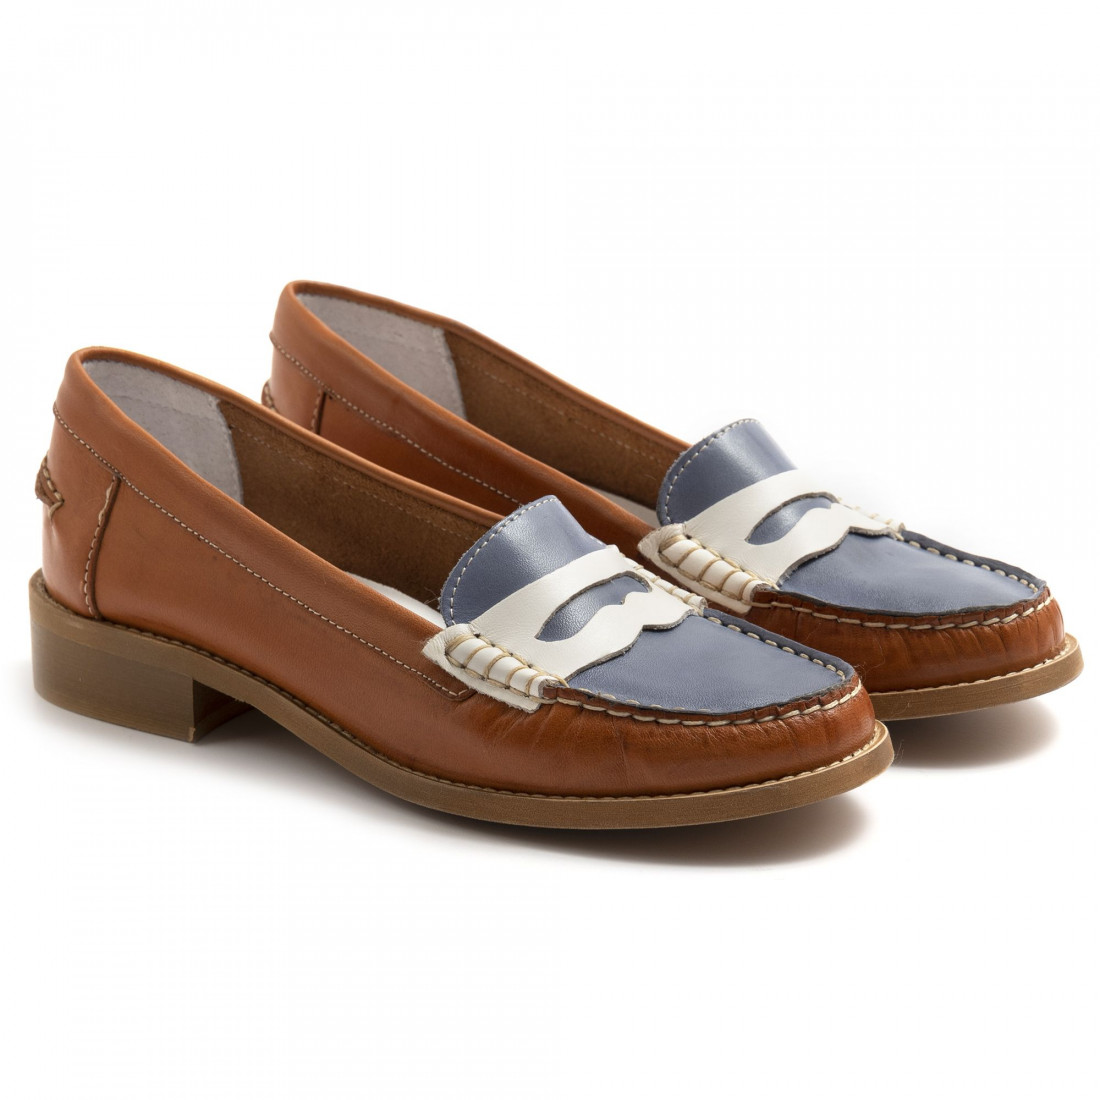 loafers woman sangiorgio 2593laura cuoio jeans 7343